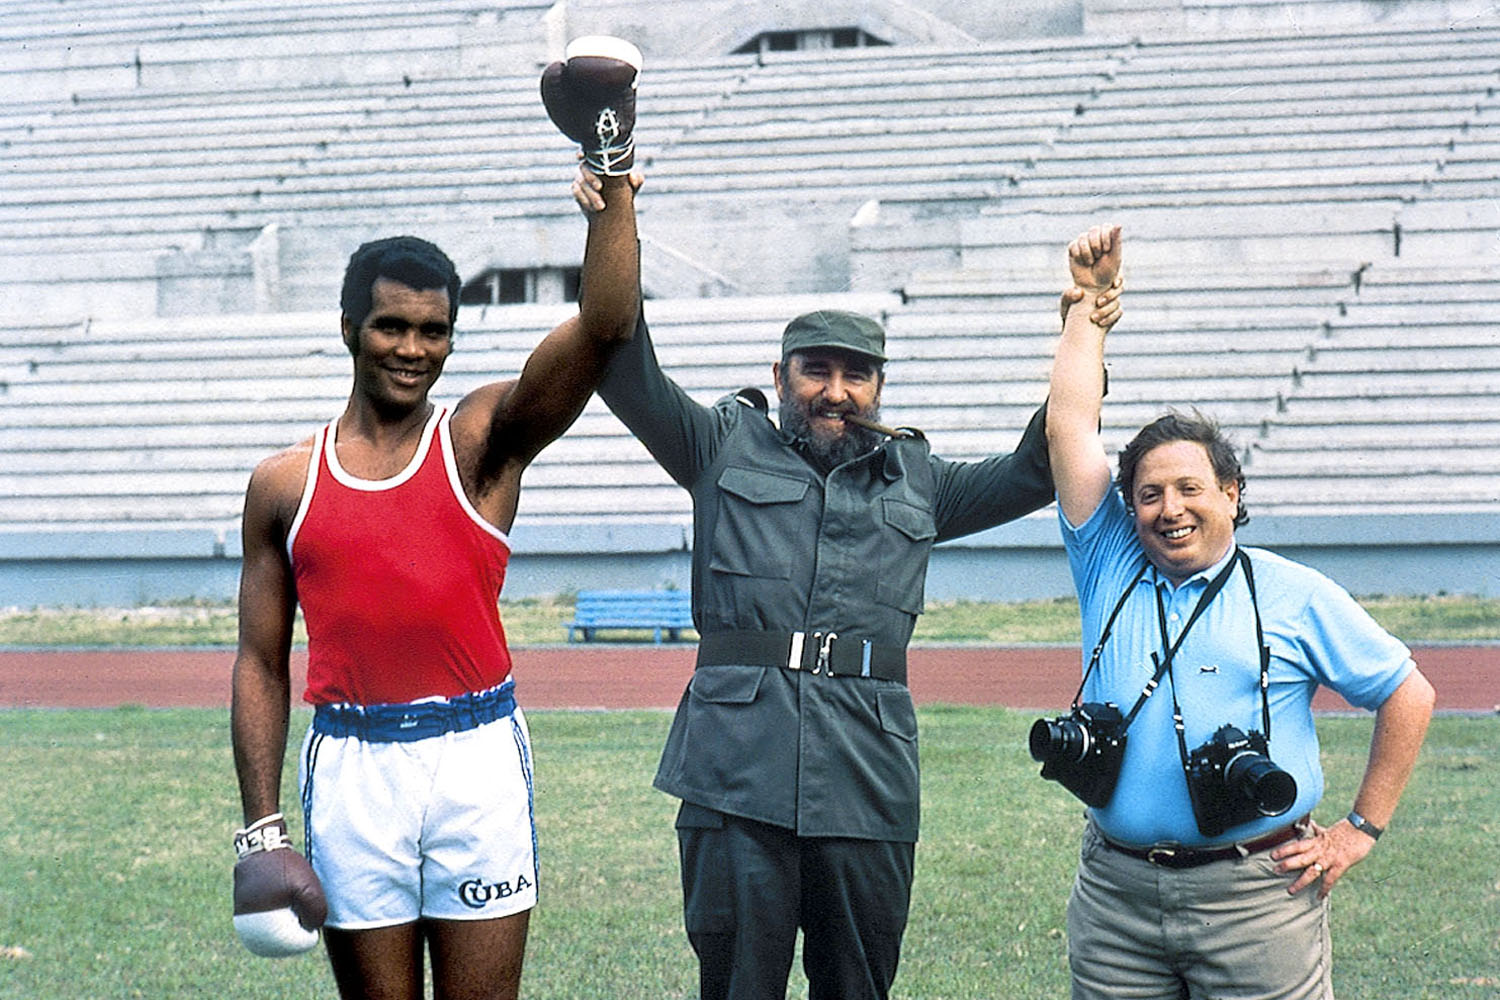 Photographer Neil Leifer (right) poses with Fidel Castro and Cuban heavyweight boxer Teofilo Stevenson while on assignment in Havana.